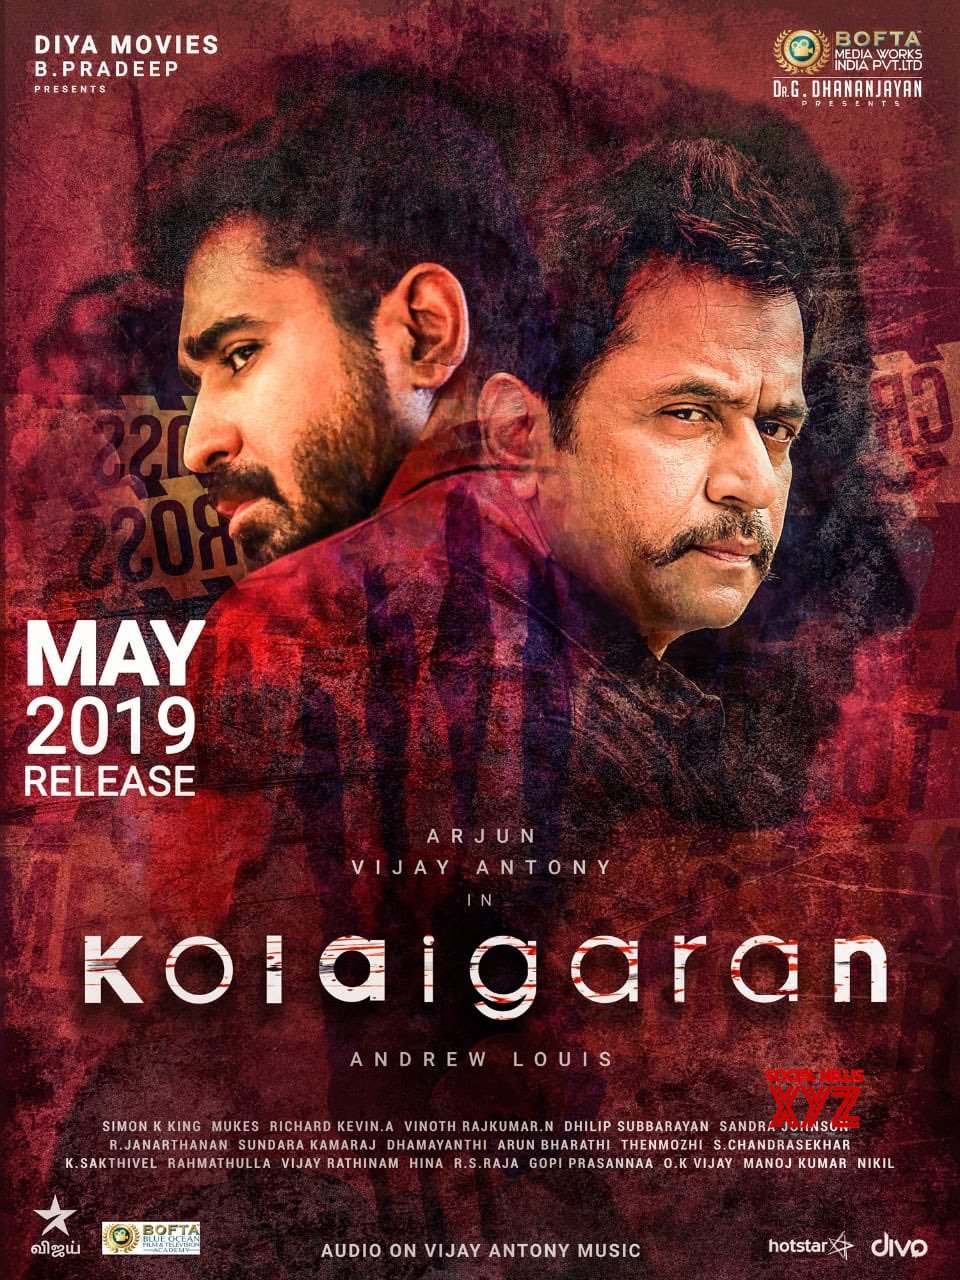 BOFTA Media Works Has Acquired The Tamil Nadu Theatrical Rights Of Vijay Antony And Arjun's Kolaigaaran